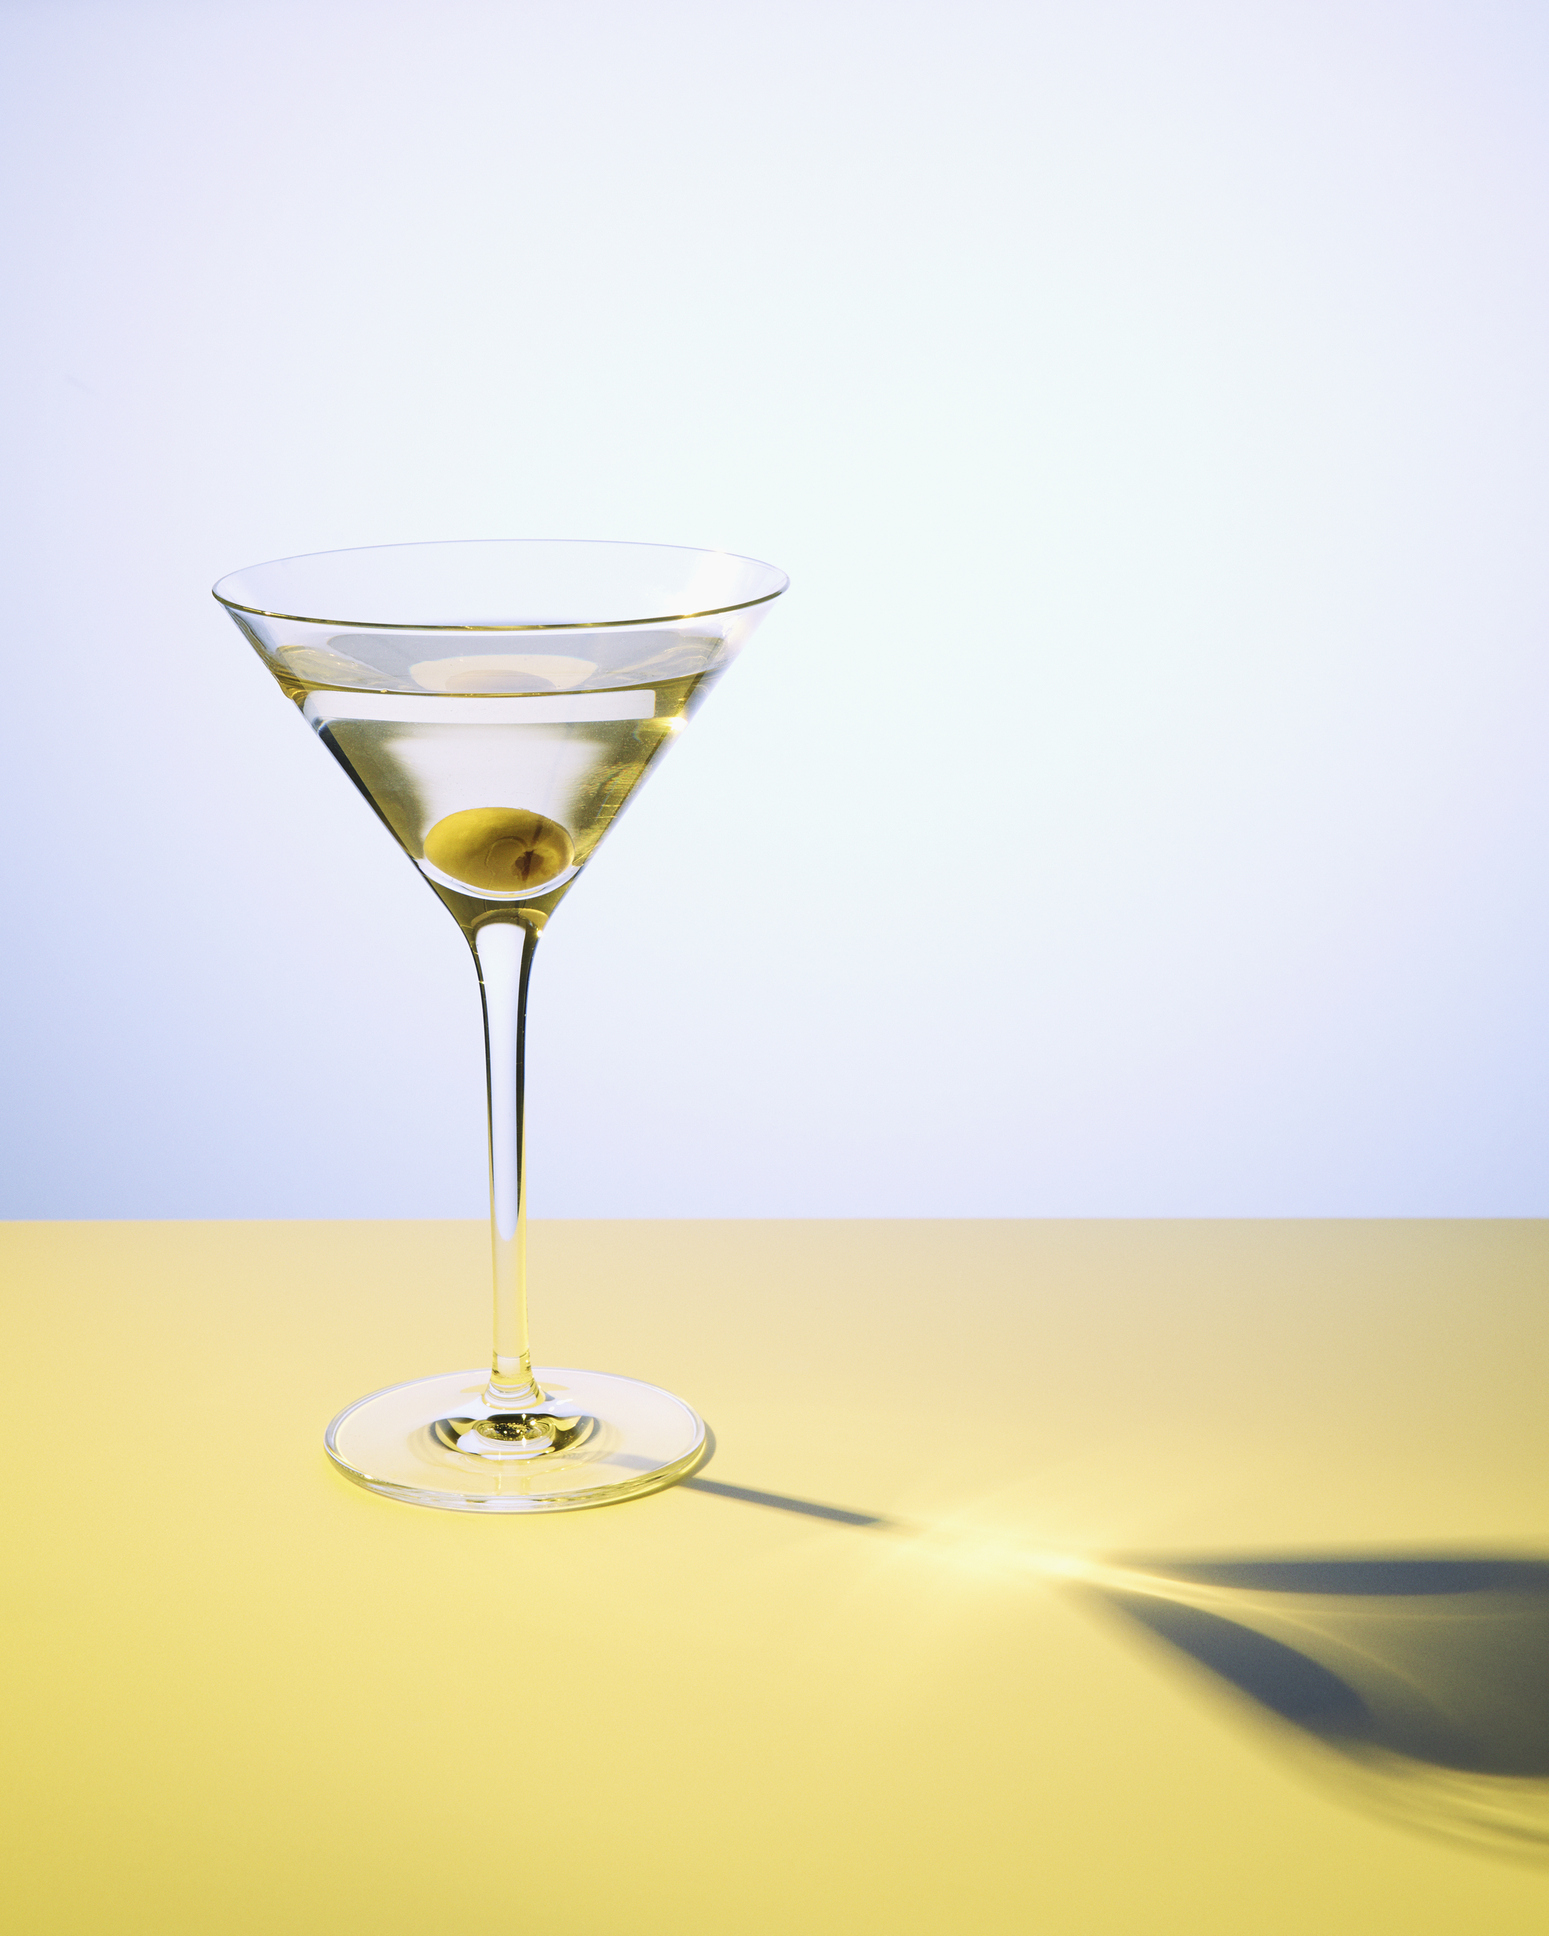 Martini cocktail in martini glass with an olive.  Studio shot.